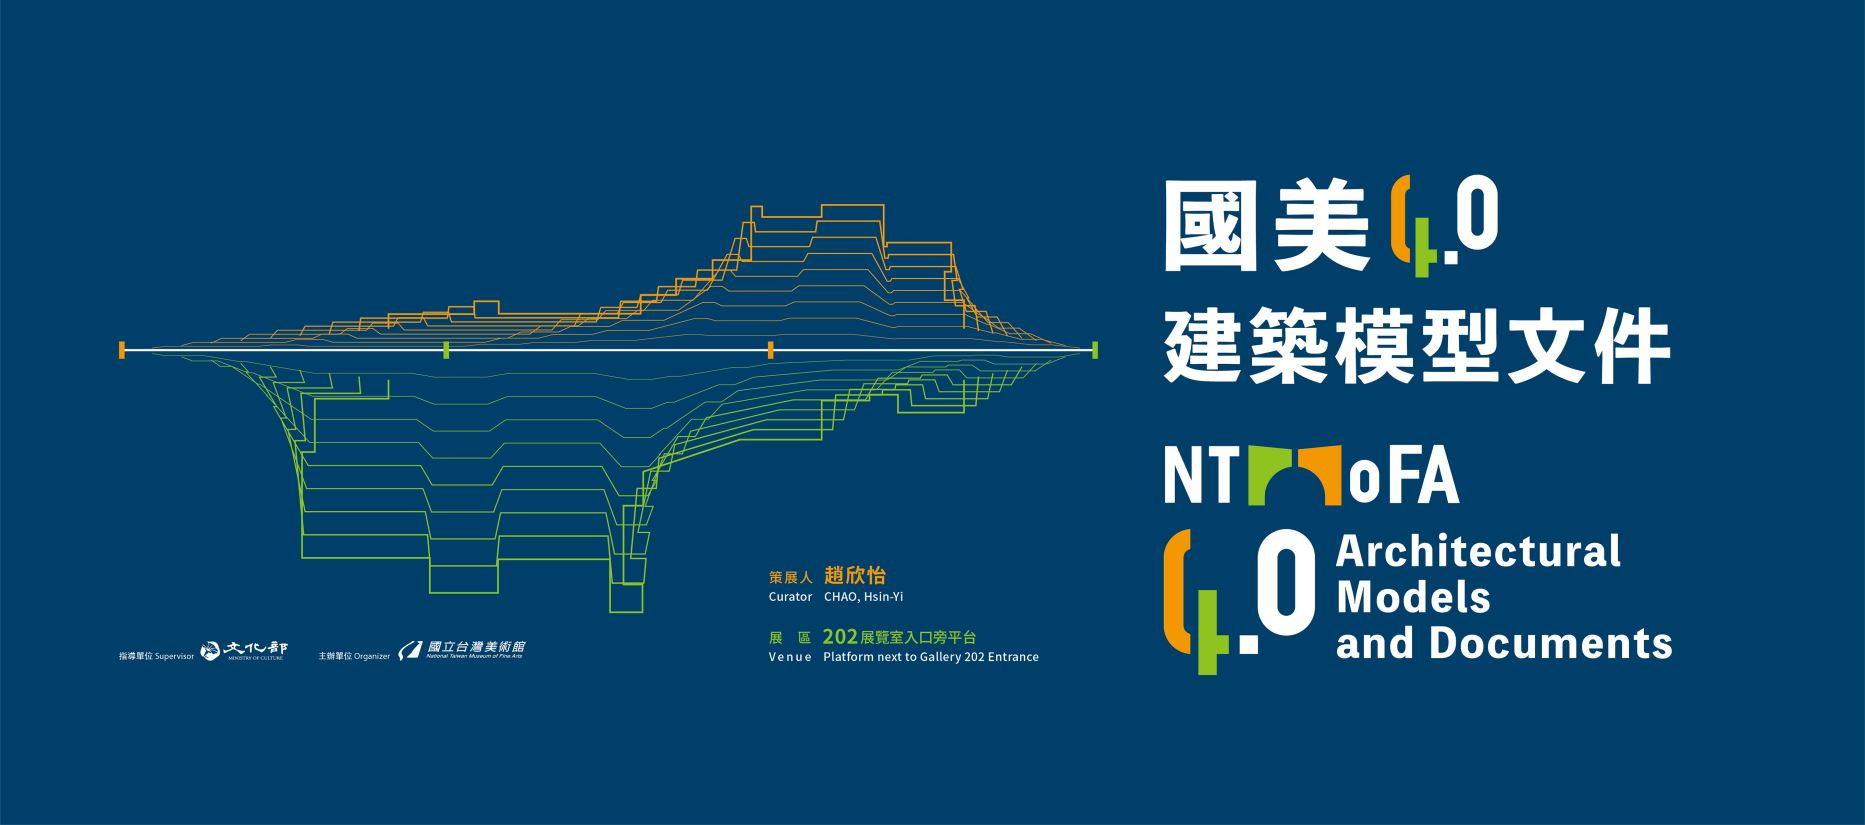 Exhibition of NTMOFA 4.0 Architectural Models and Documentsopennewwindow